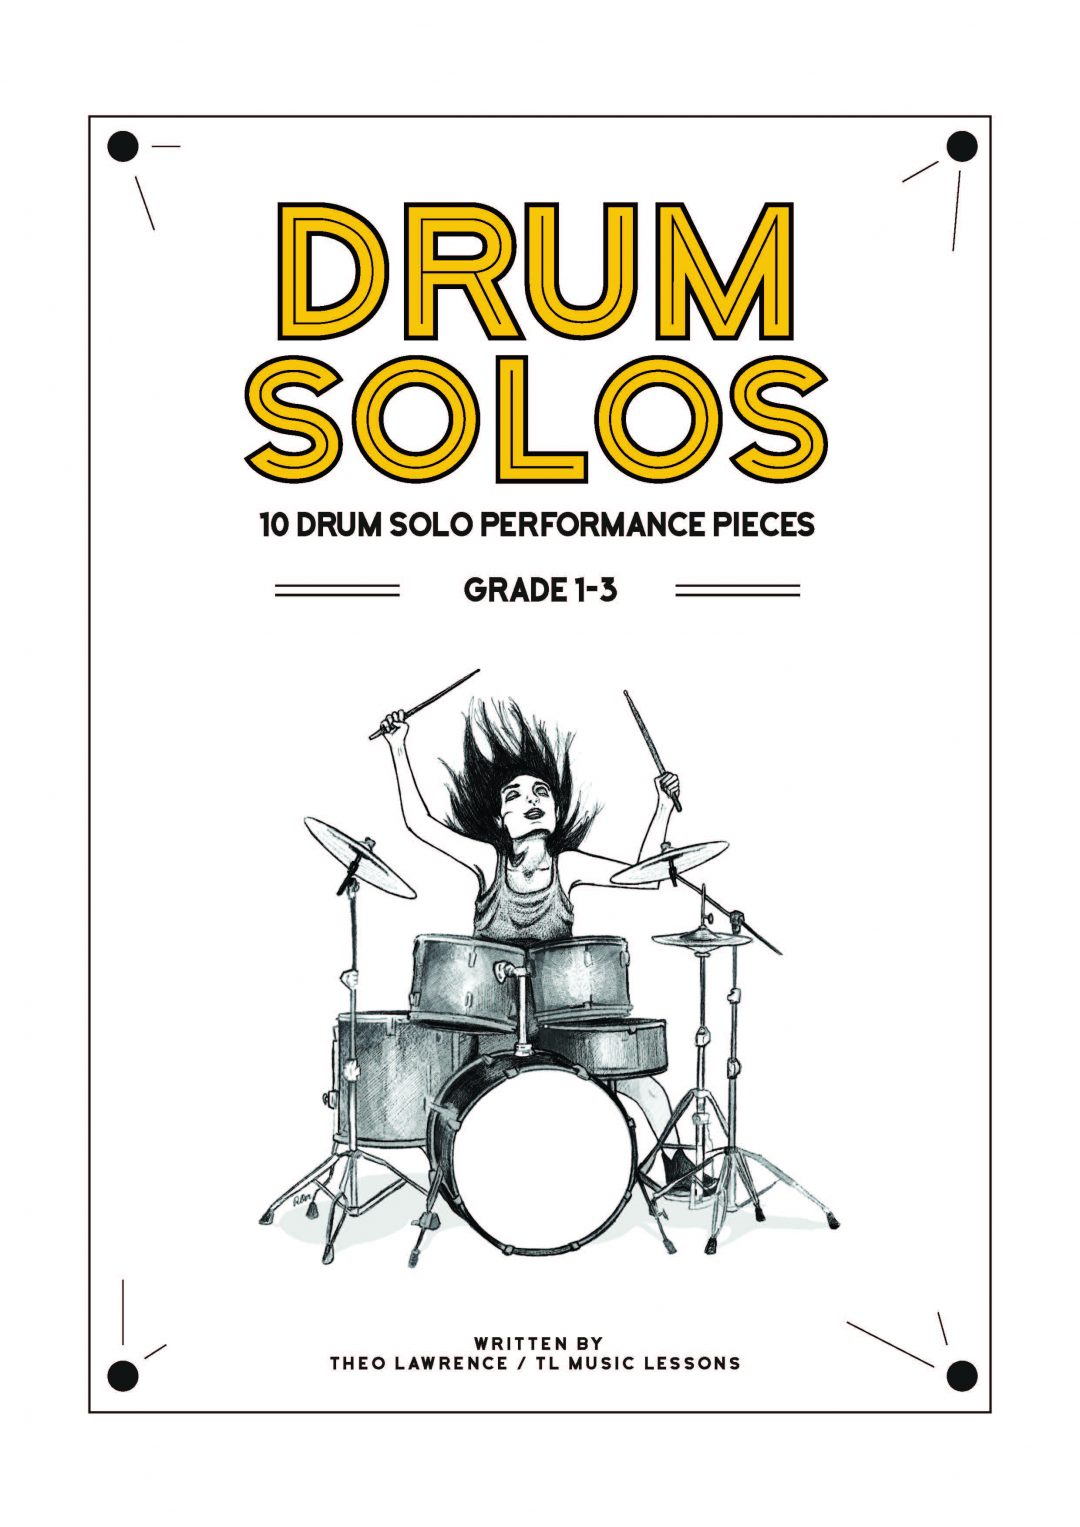 Rudiment epub drum